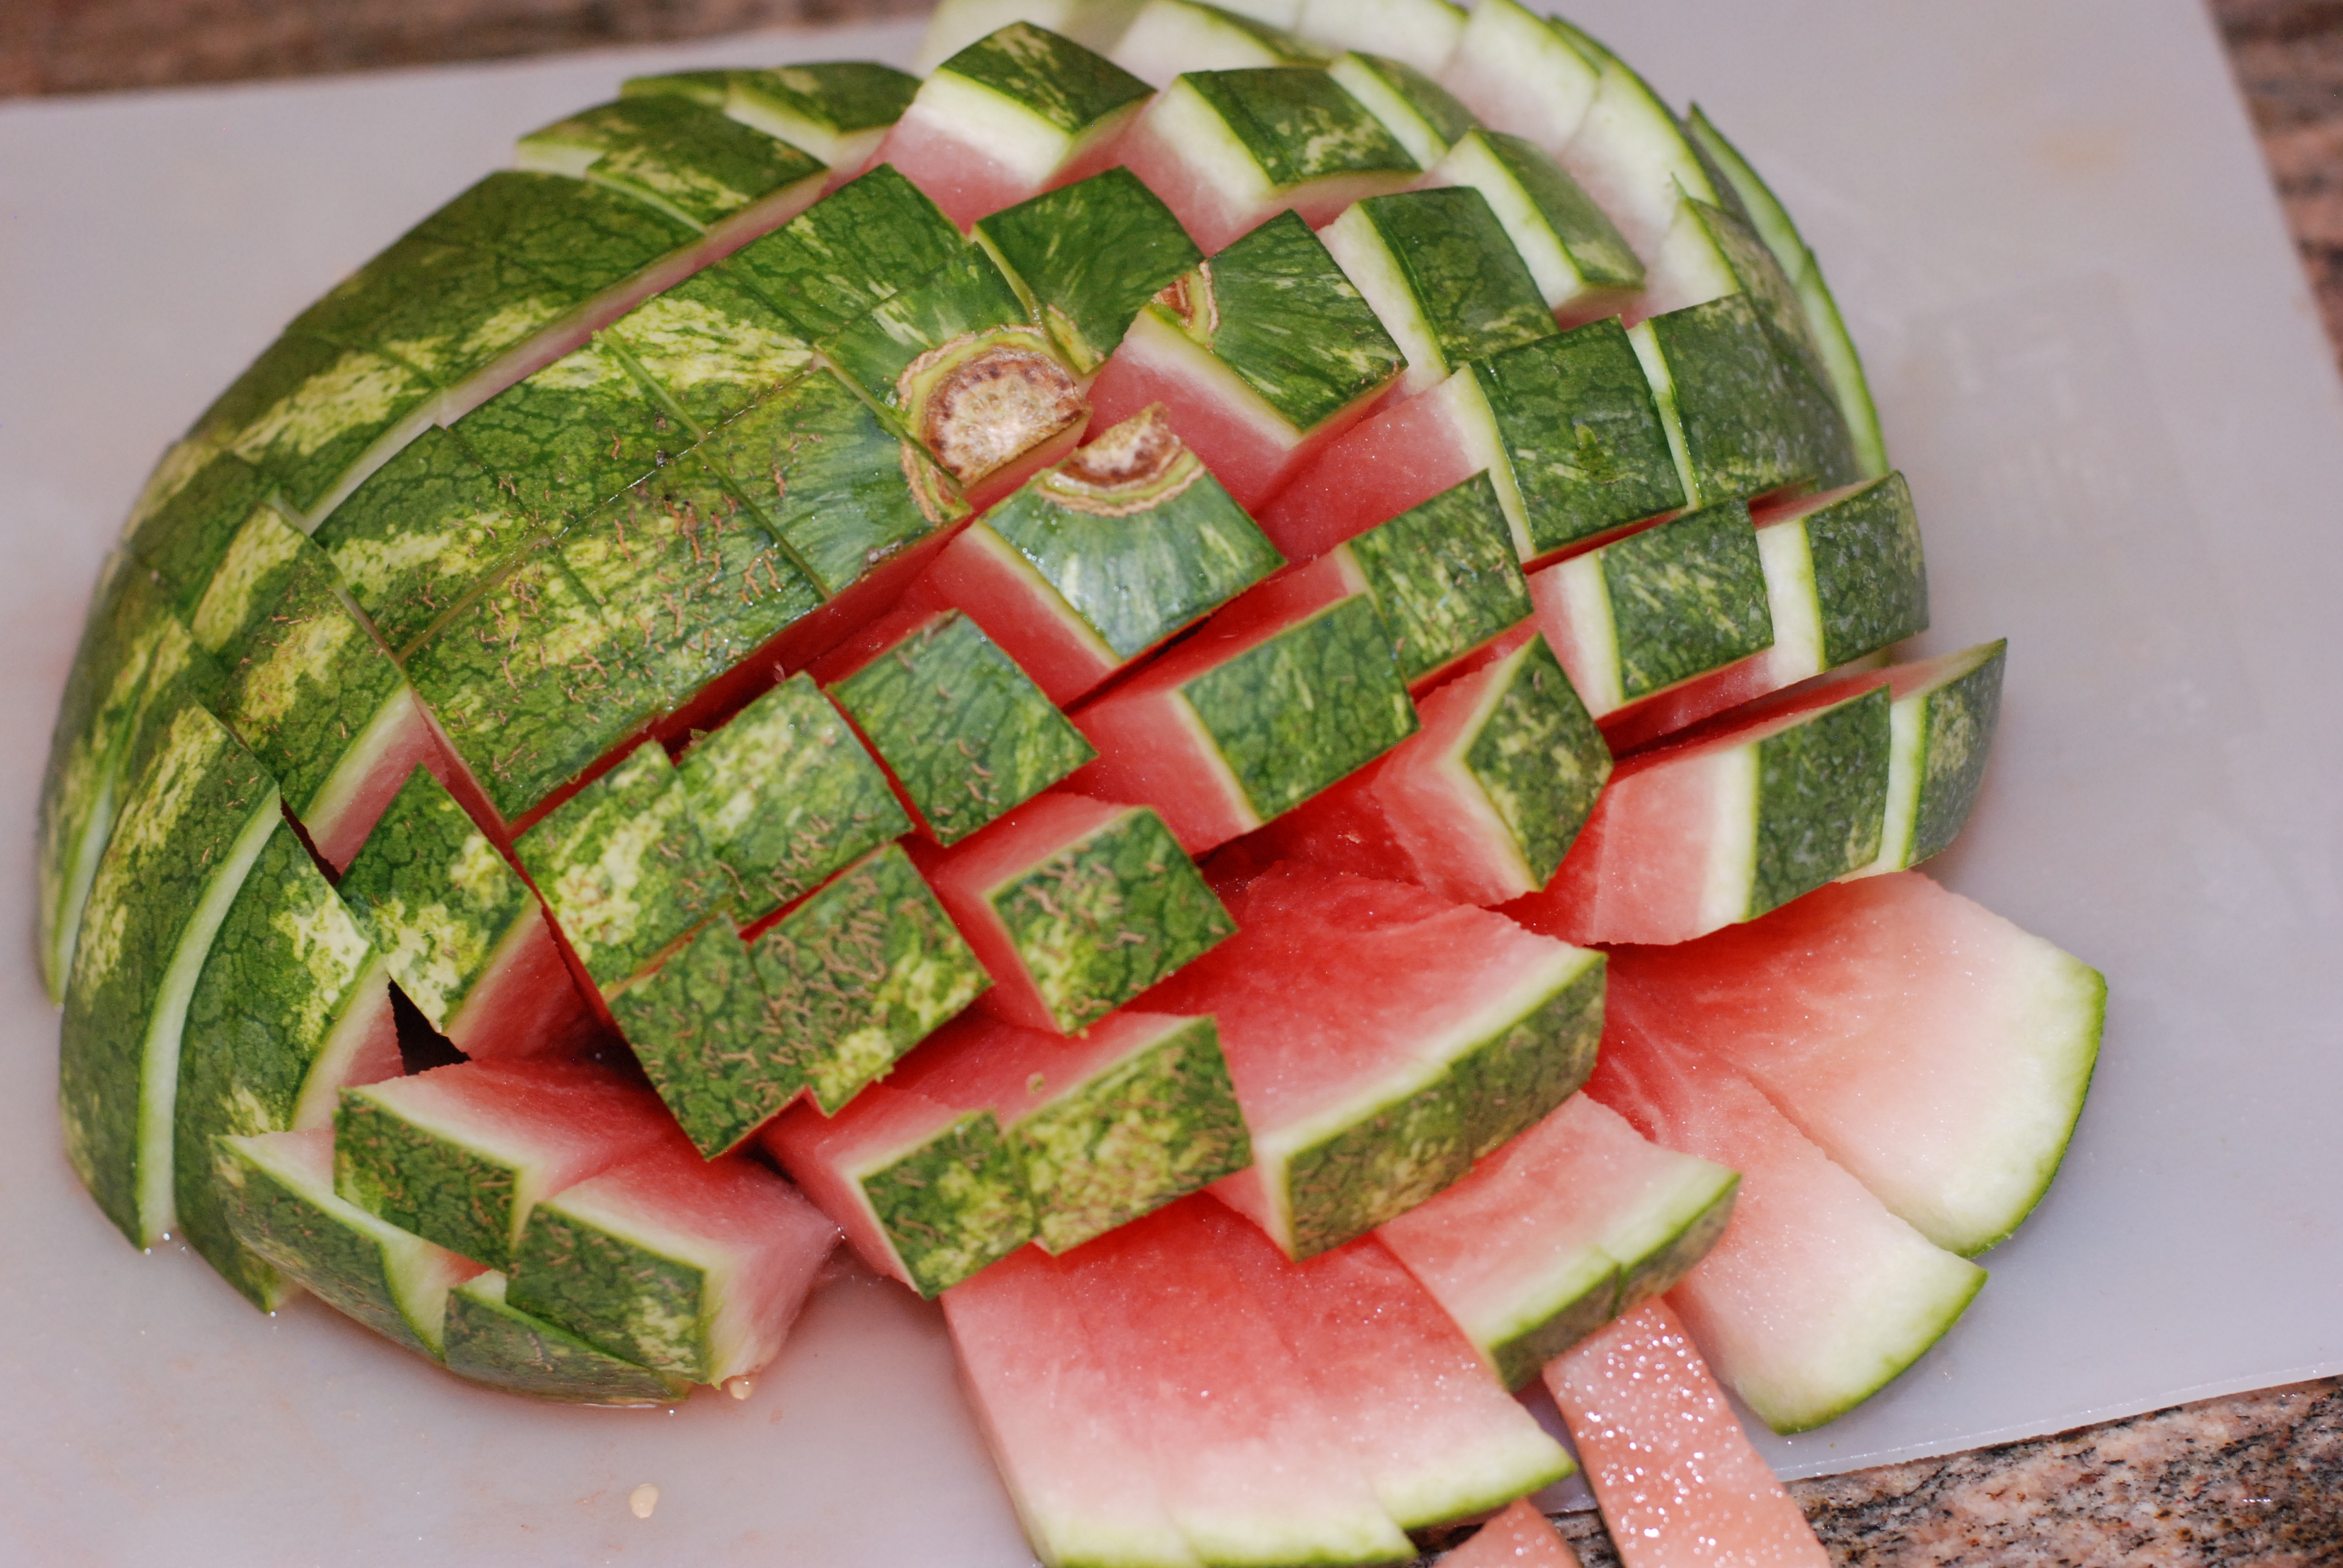 It's that time of year when all the watermelon artwork comes on the scene! These days I don't go to a baby shower without seeing a watermelon baby carriage or to a family reunion without a watermelon hedgehog. It's such a fun trend! Here is a list of 10 fun and creative ways to cut a .